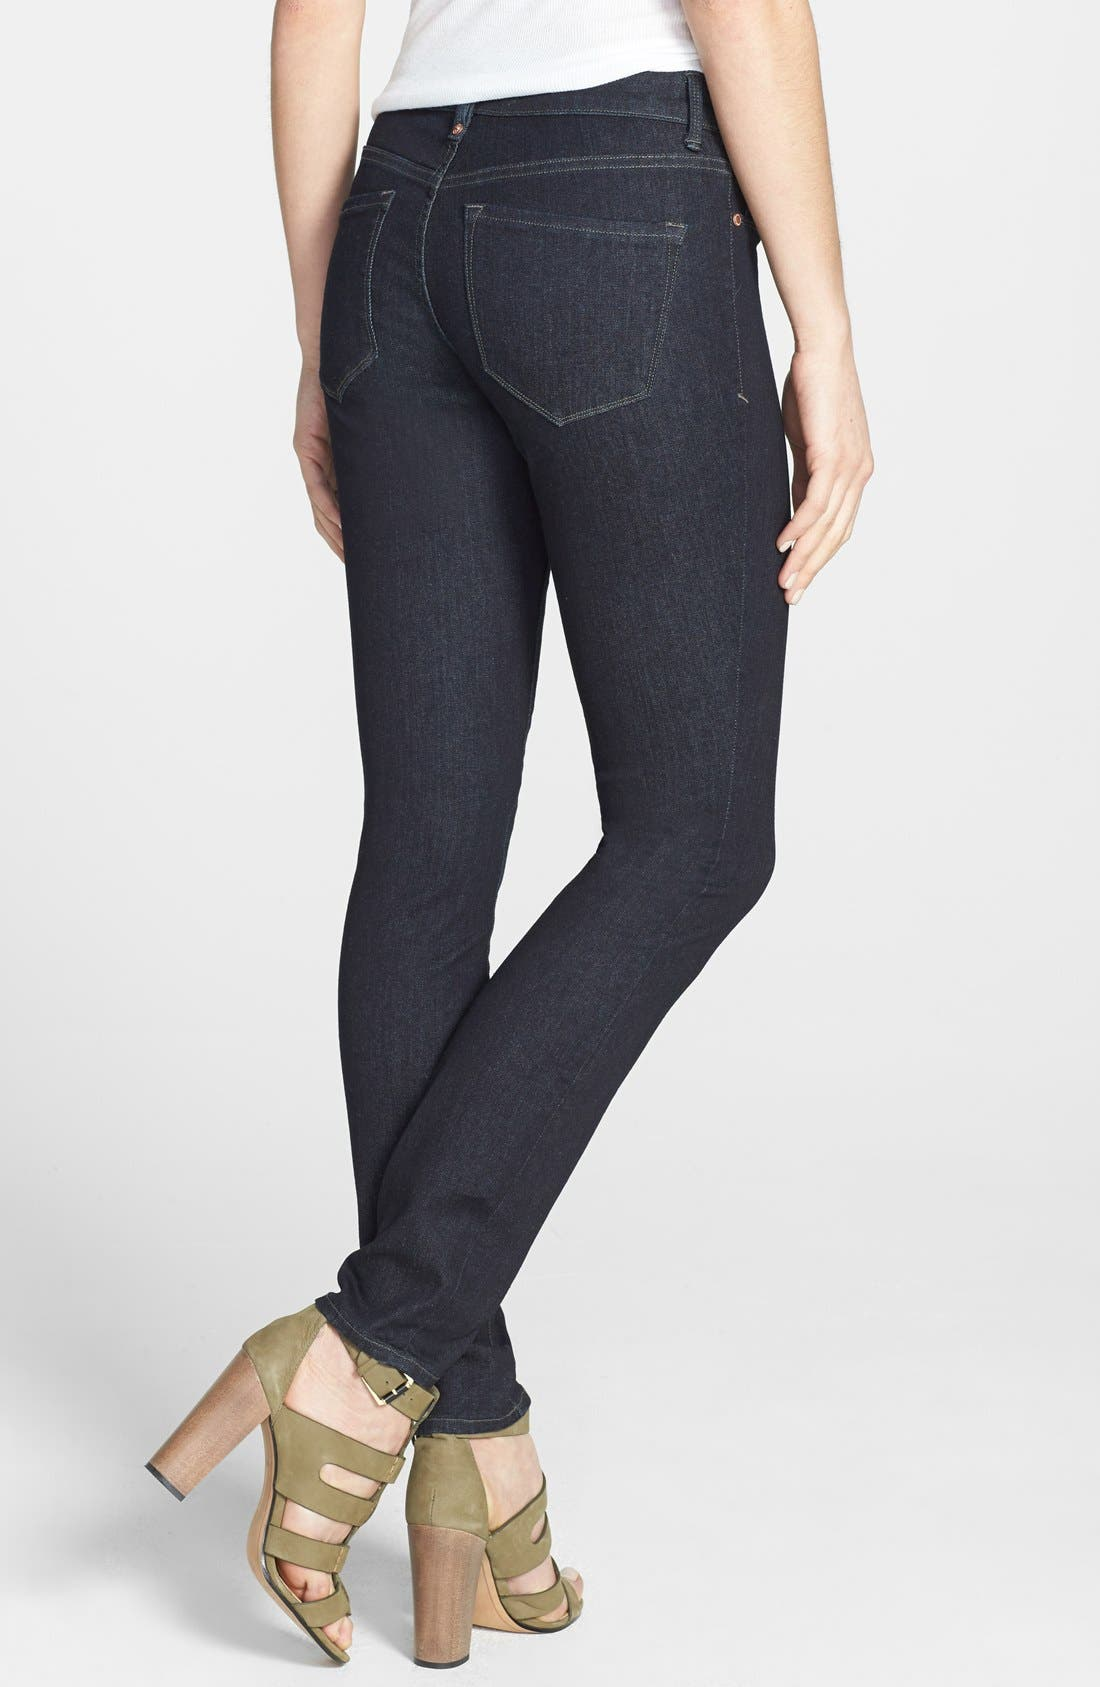 Alternate Image 2  - MARC BY MARC JACOBS 'Stick' Stretch Skinny Jeans (Rinse)